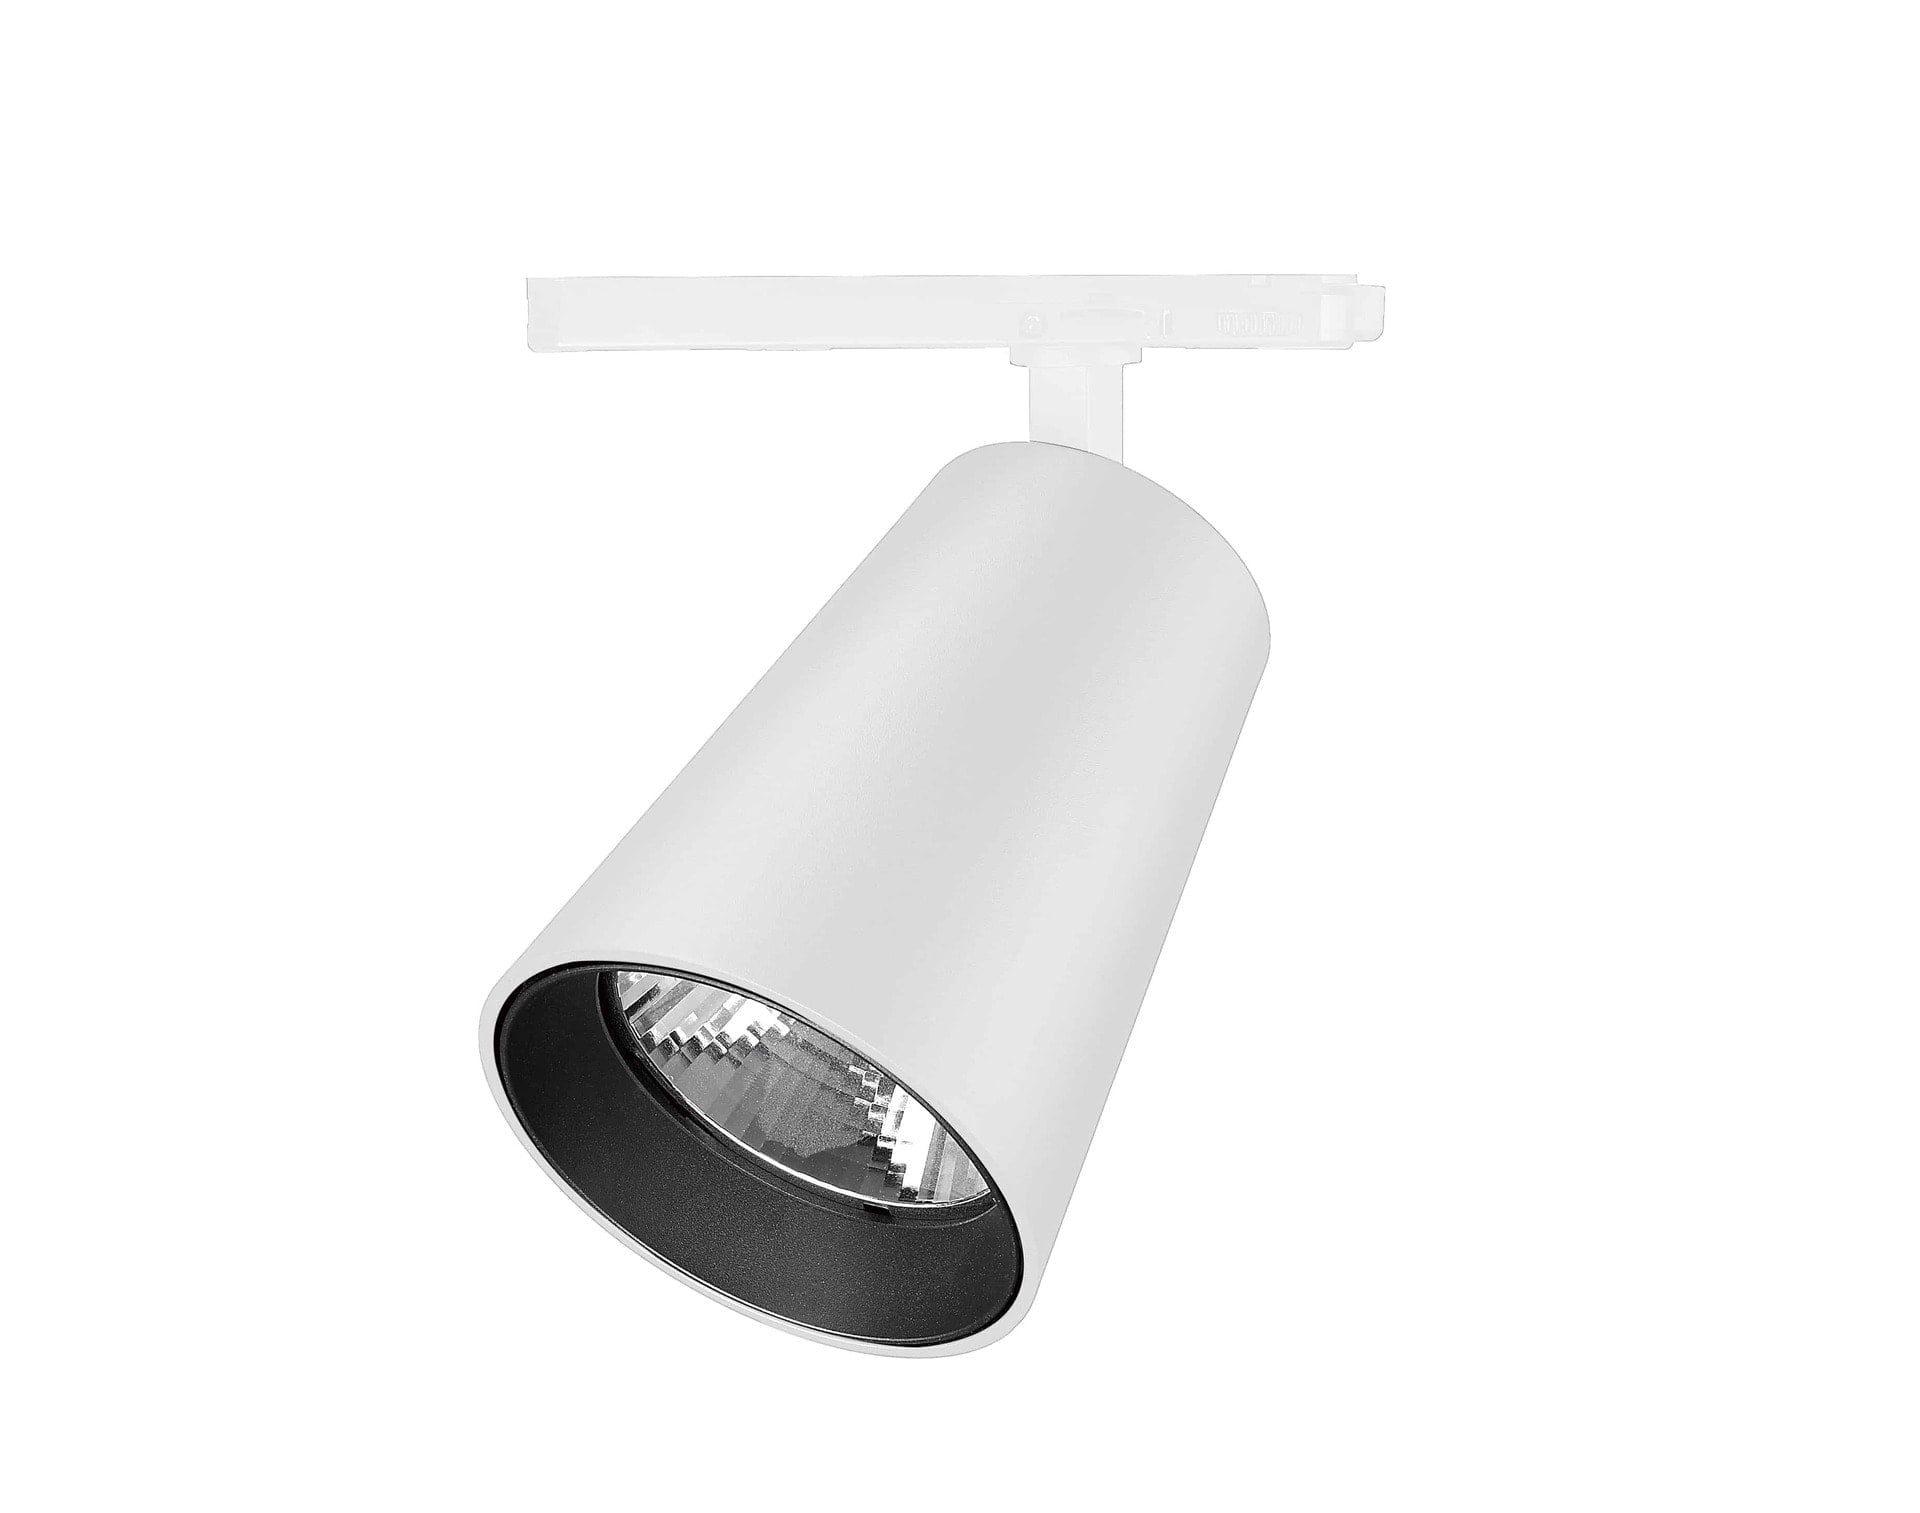 Light4U Ymir LED Spotlight